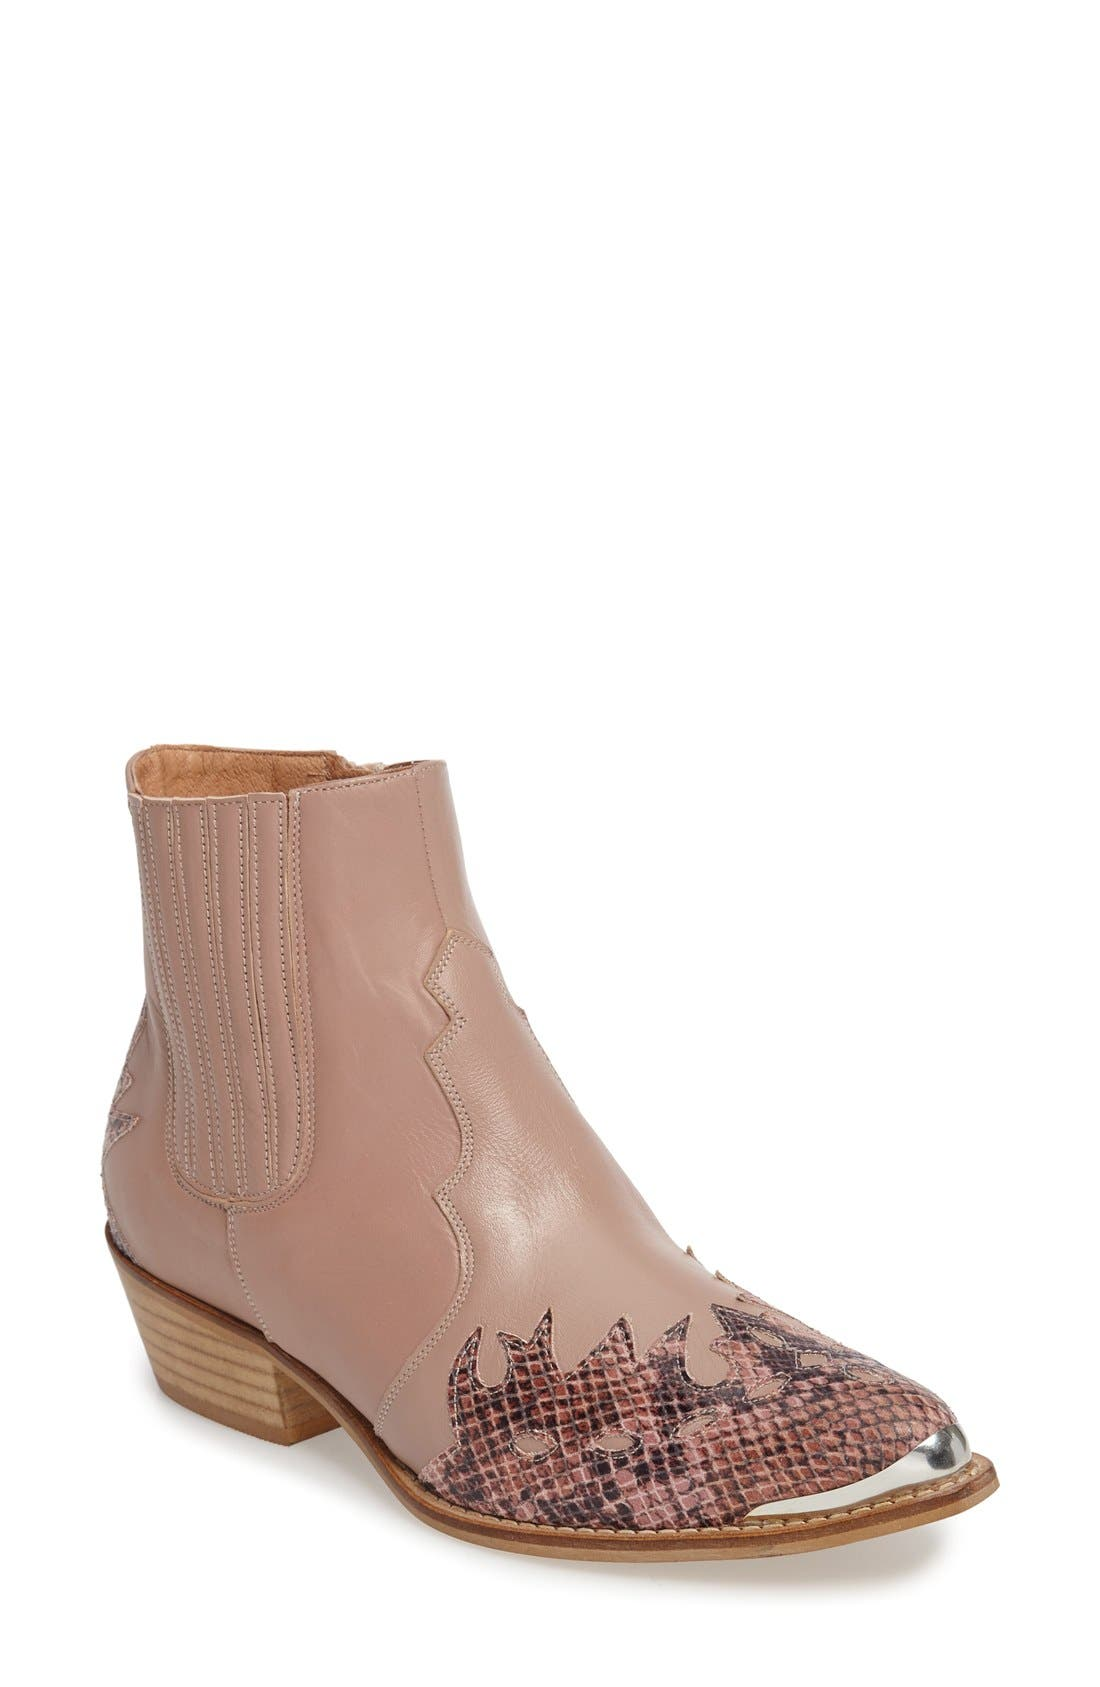 Main Image - Topshop 'Arson' Western Ankle Boots (Women)